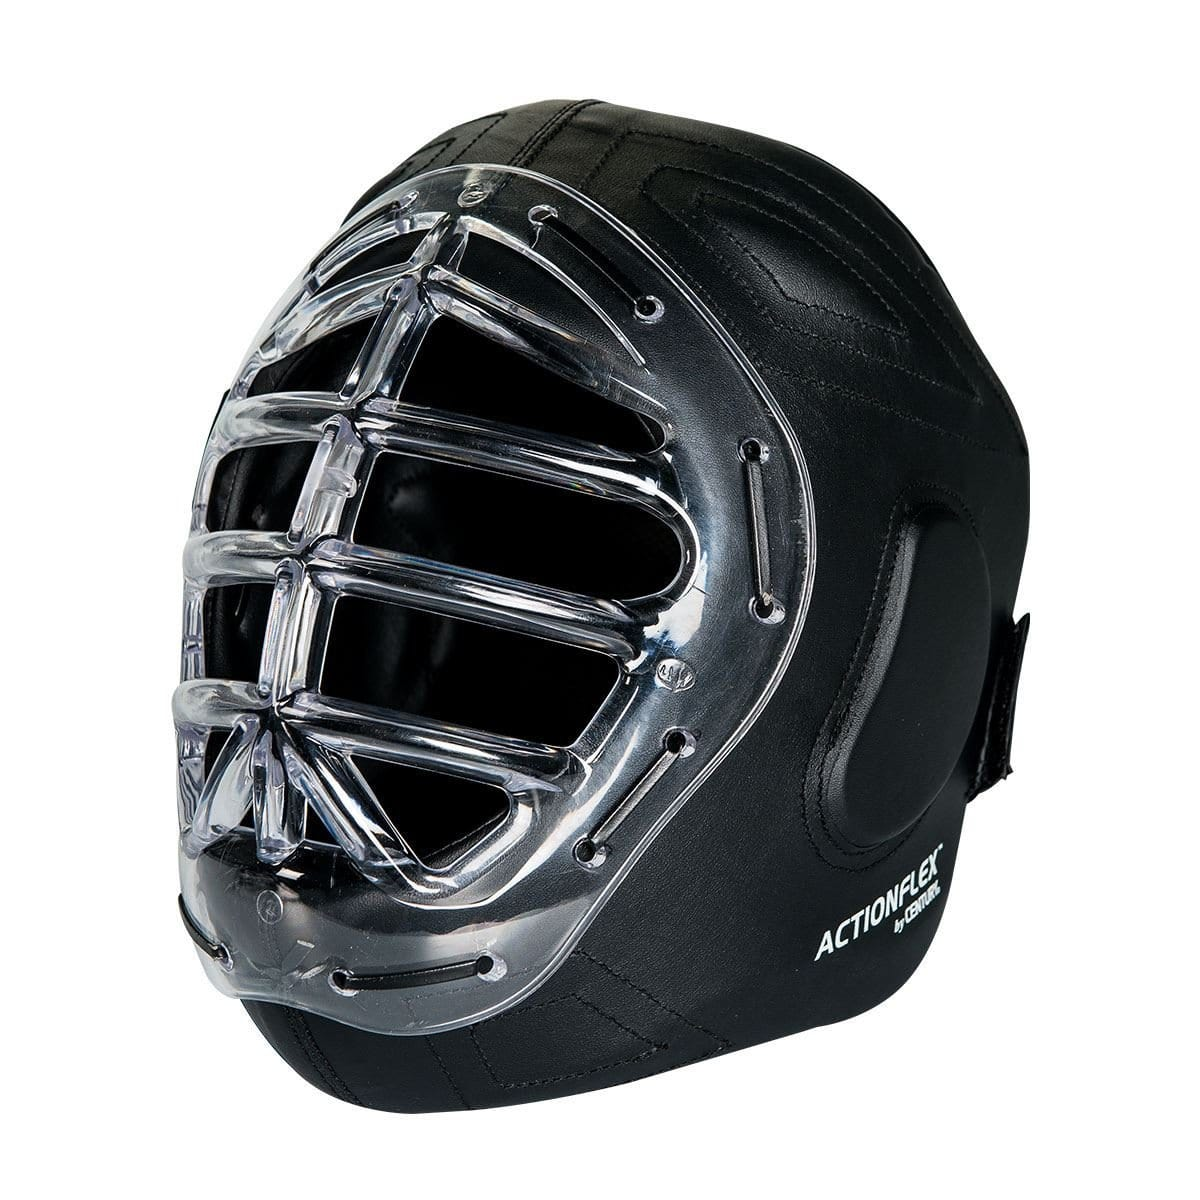 Actionflex Headgear by Century c11486 Practice training headgear